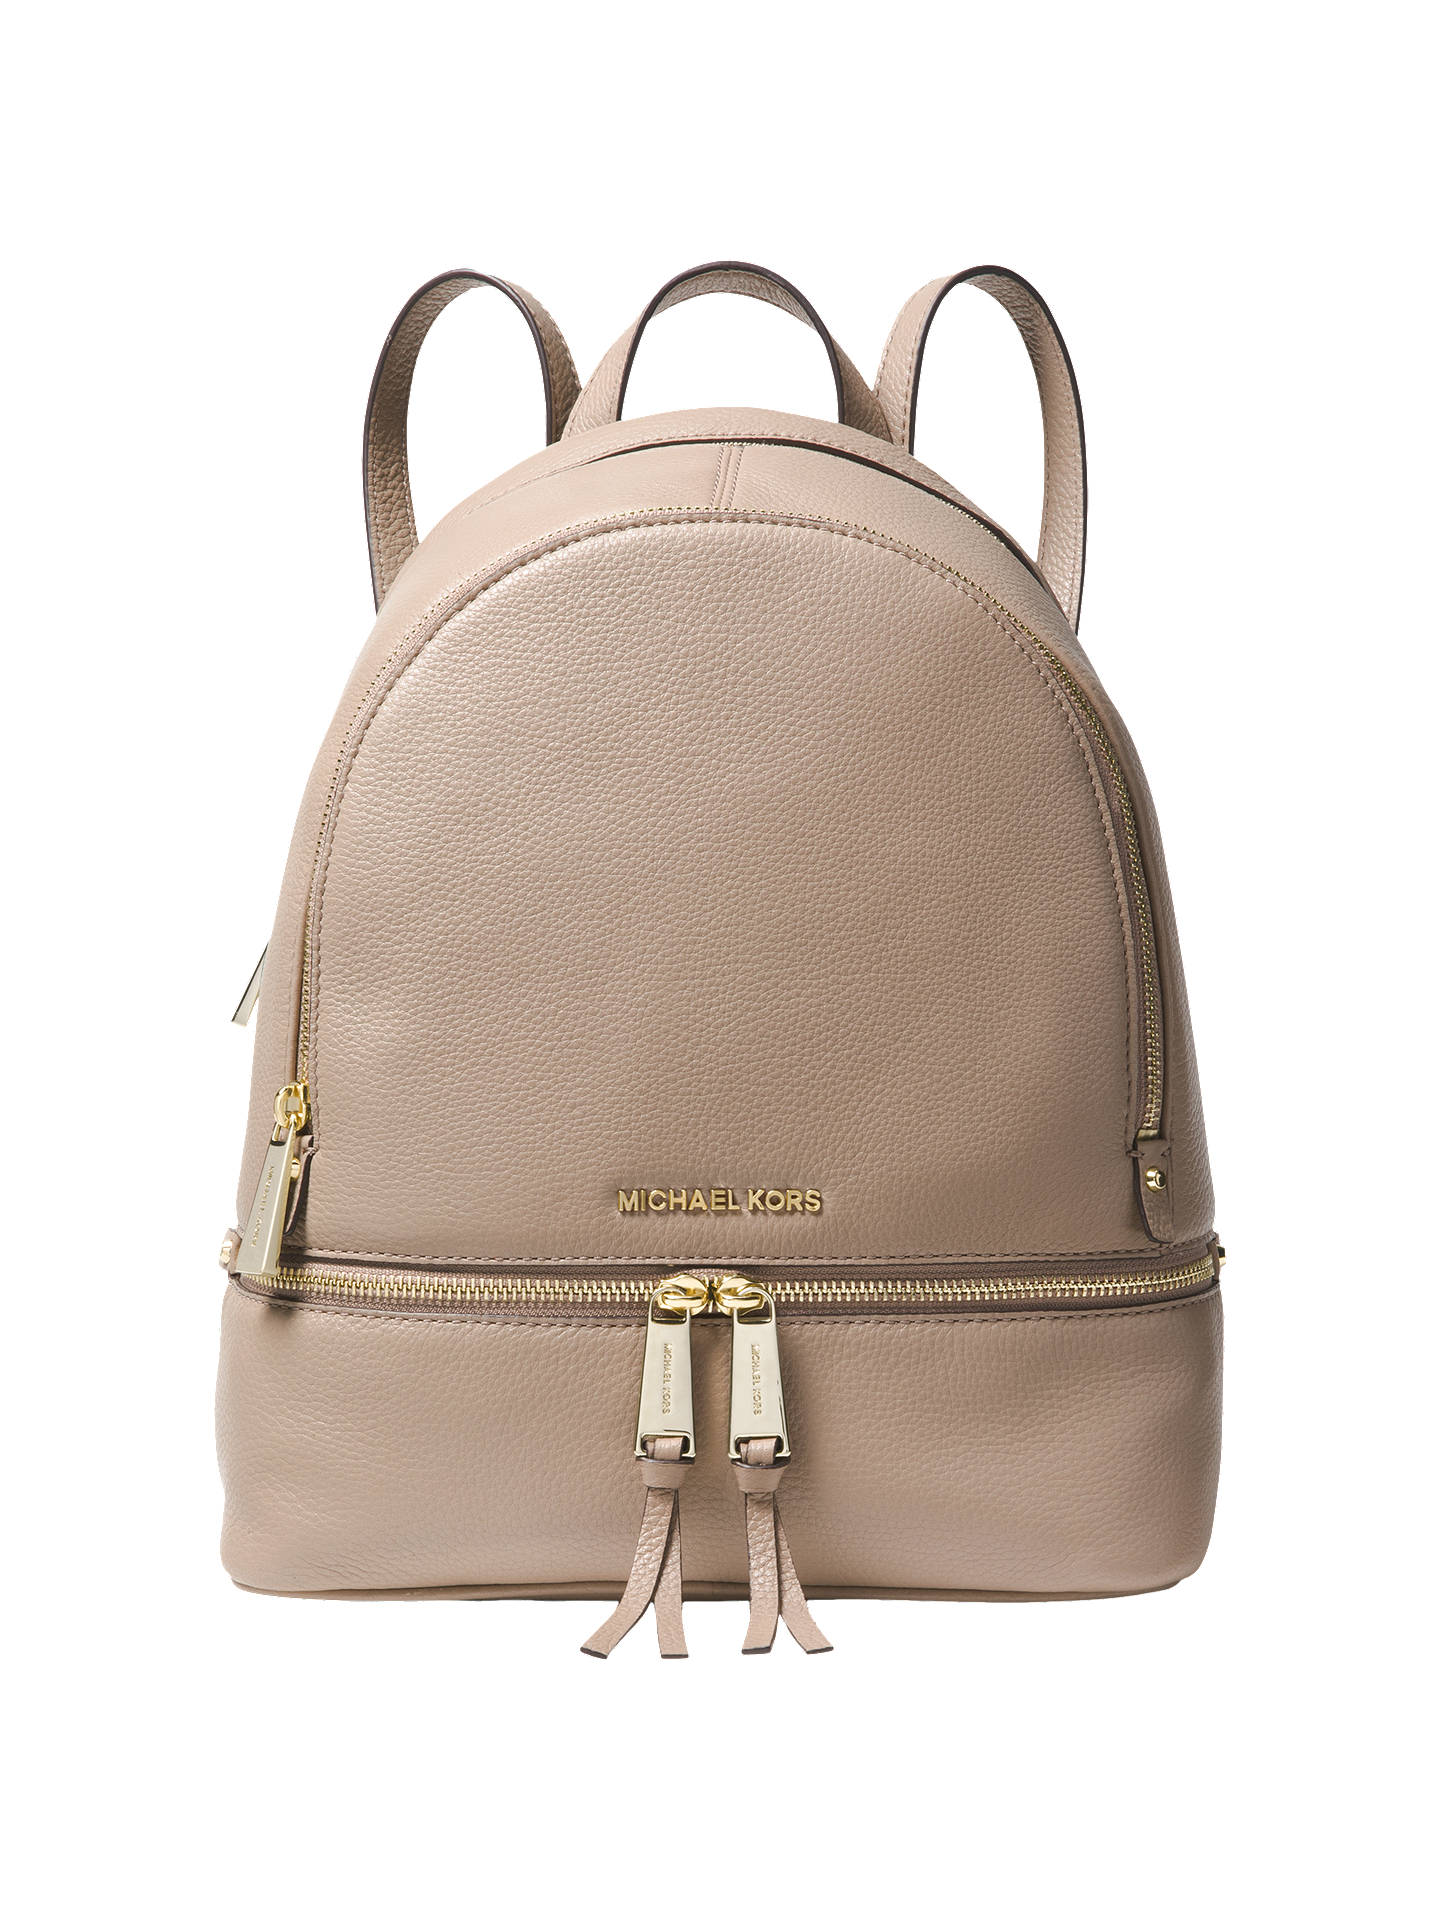 d160130c61eea MICHAEL Michael Kors Rhea Leather Medium Backpack at John Lewis ...